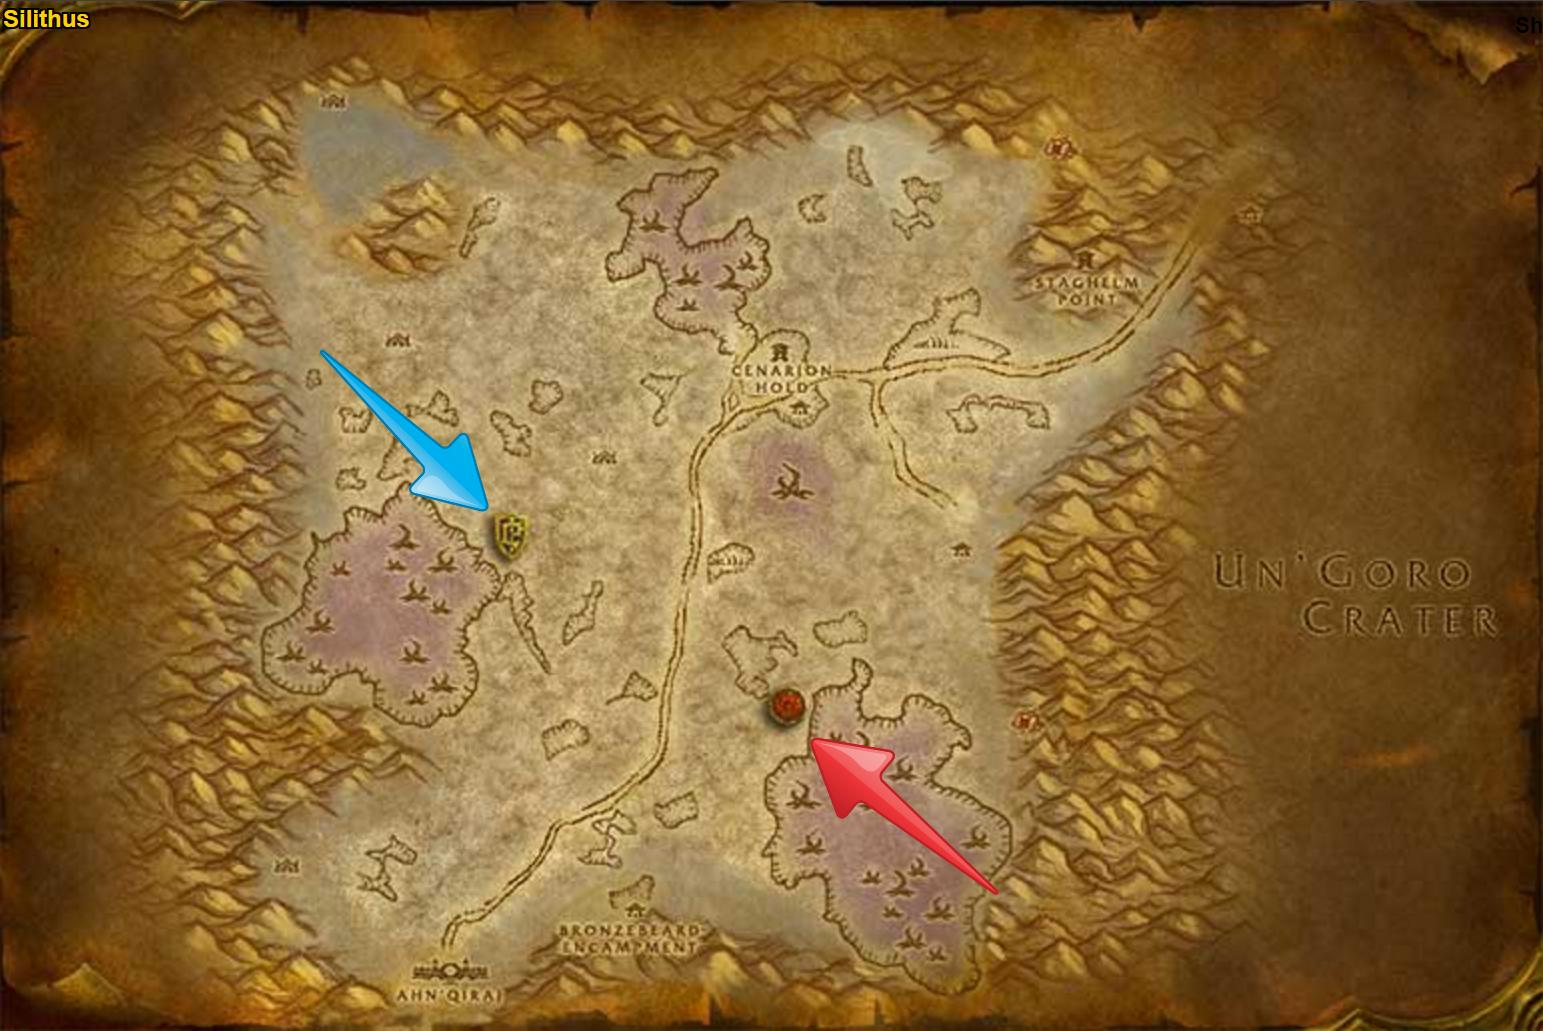 The Silithyst Must Flow world PvP event